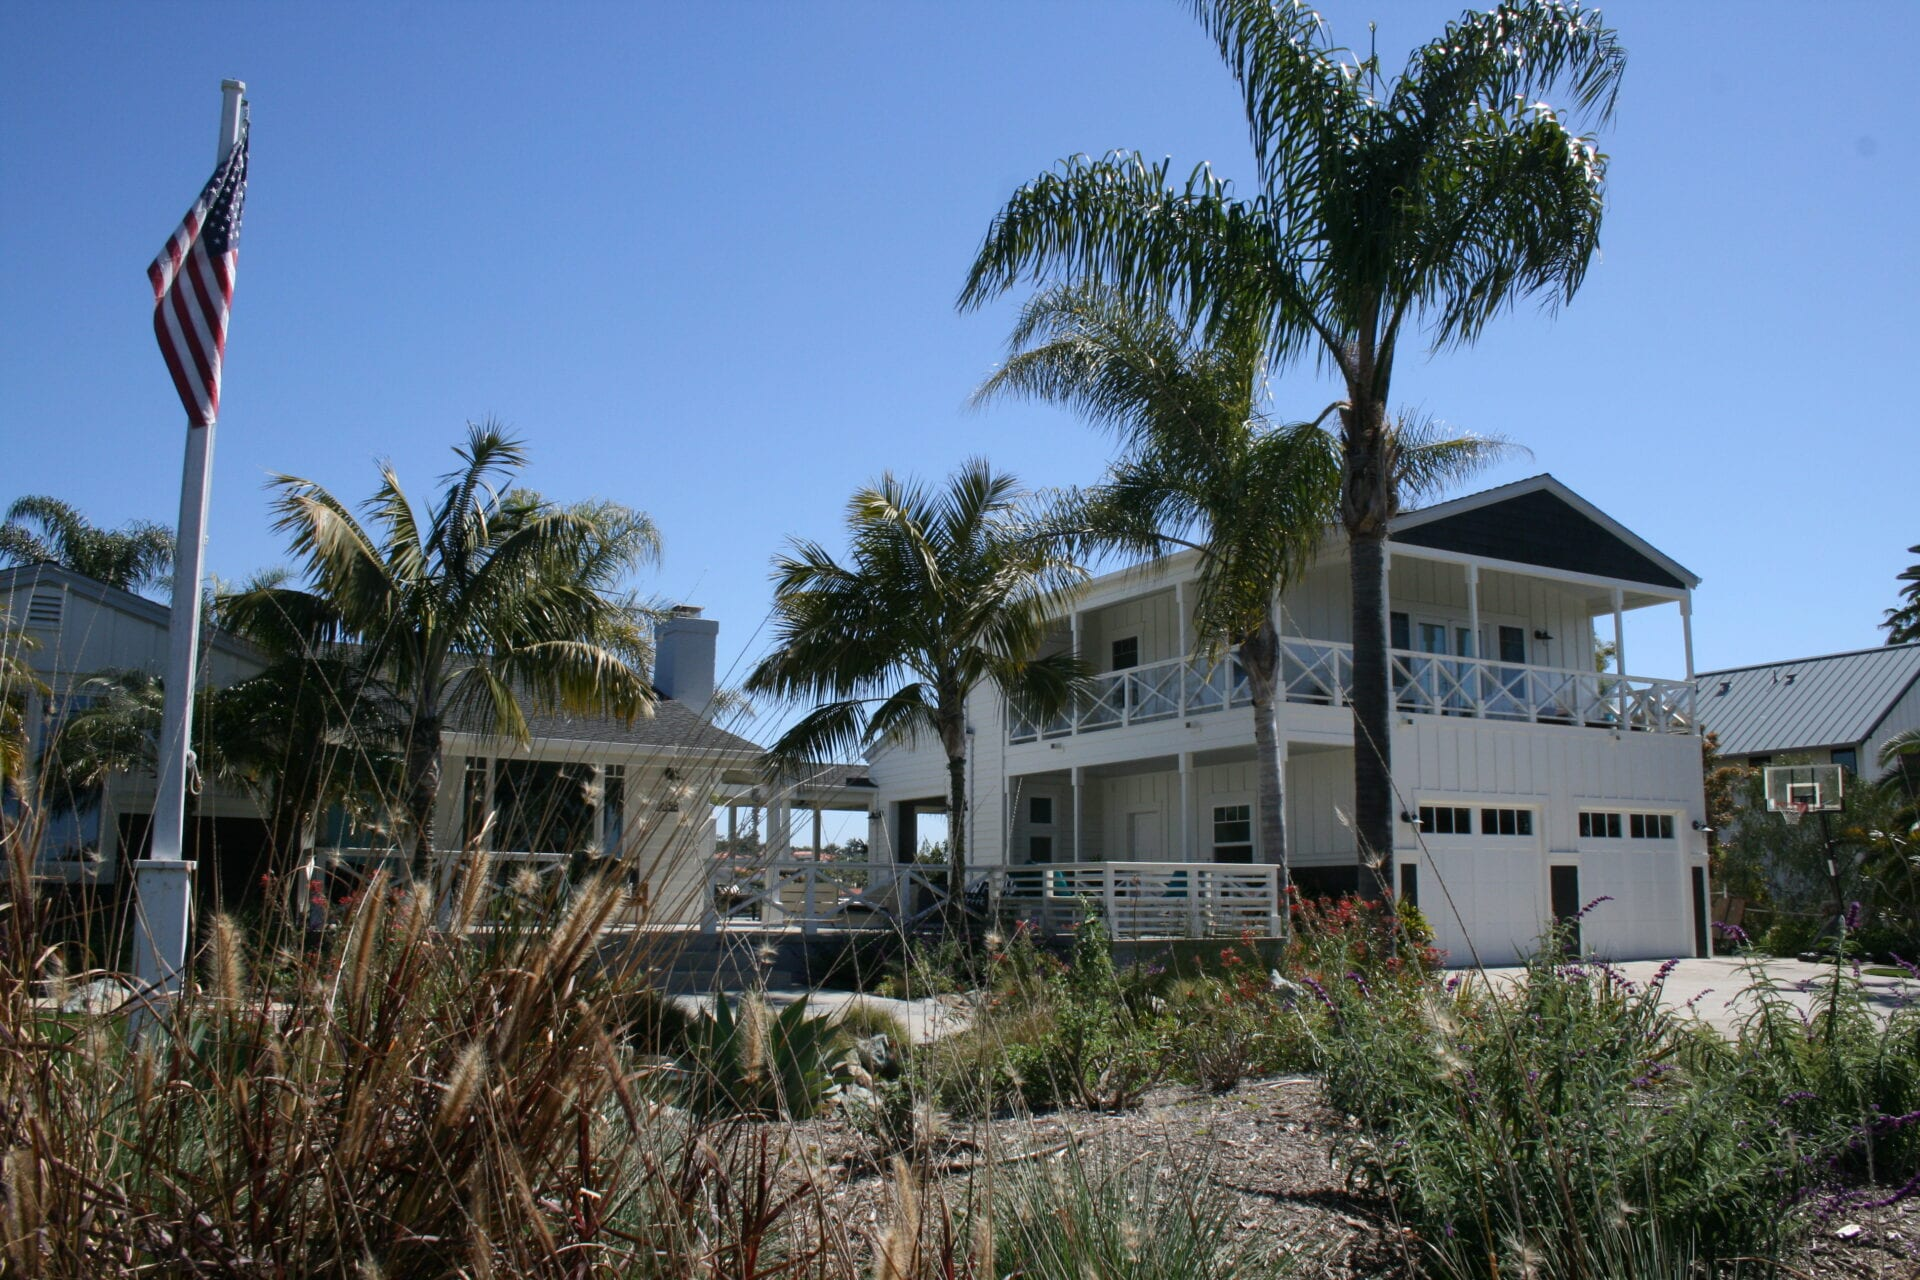 Carlsbad Coastal Living